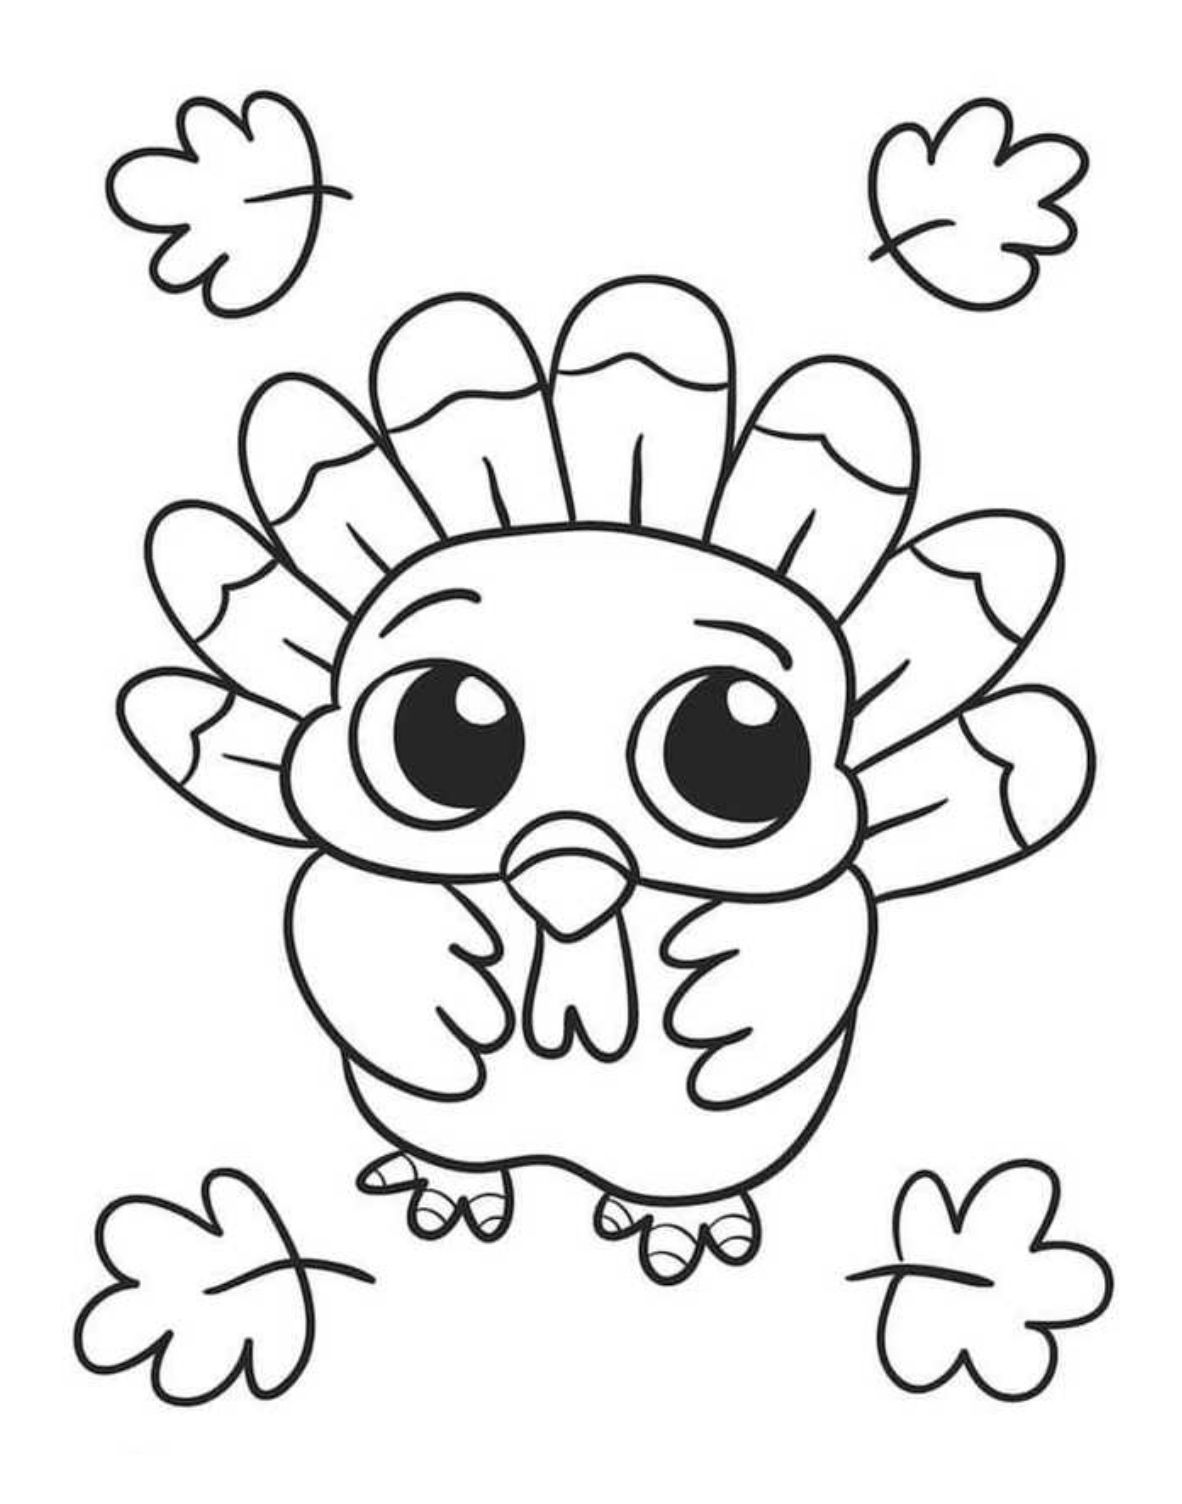 Pin By Chrissy Rose On Preschool Thanksgiving Coloring Sheets Free Thanksgiving Coloring Pages Turkey Coloring Pages